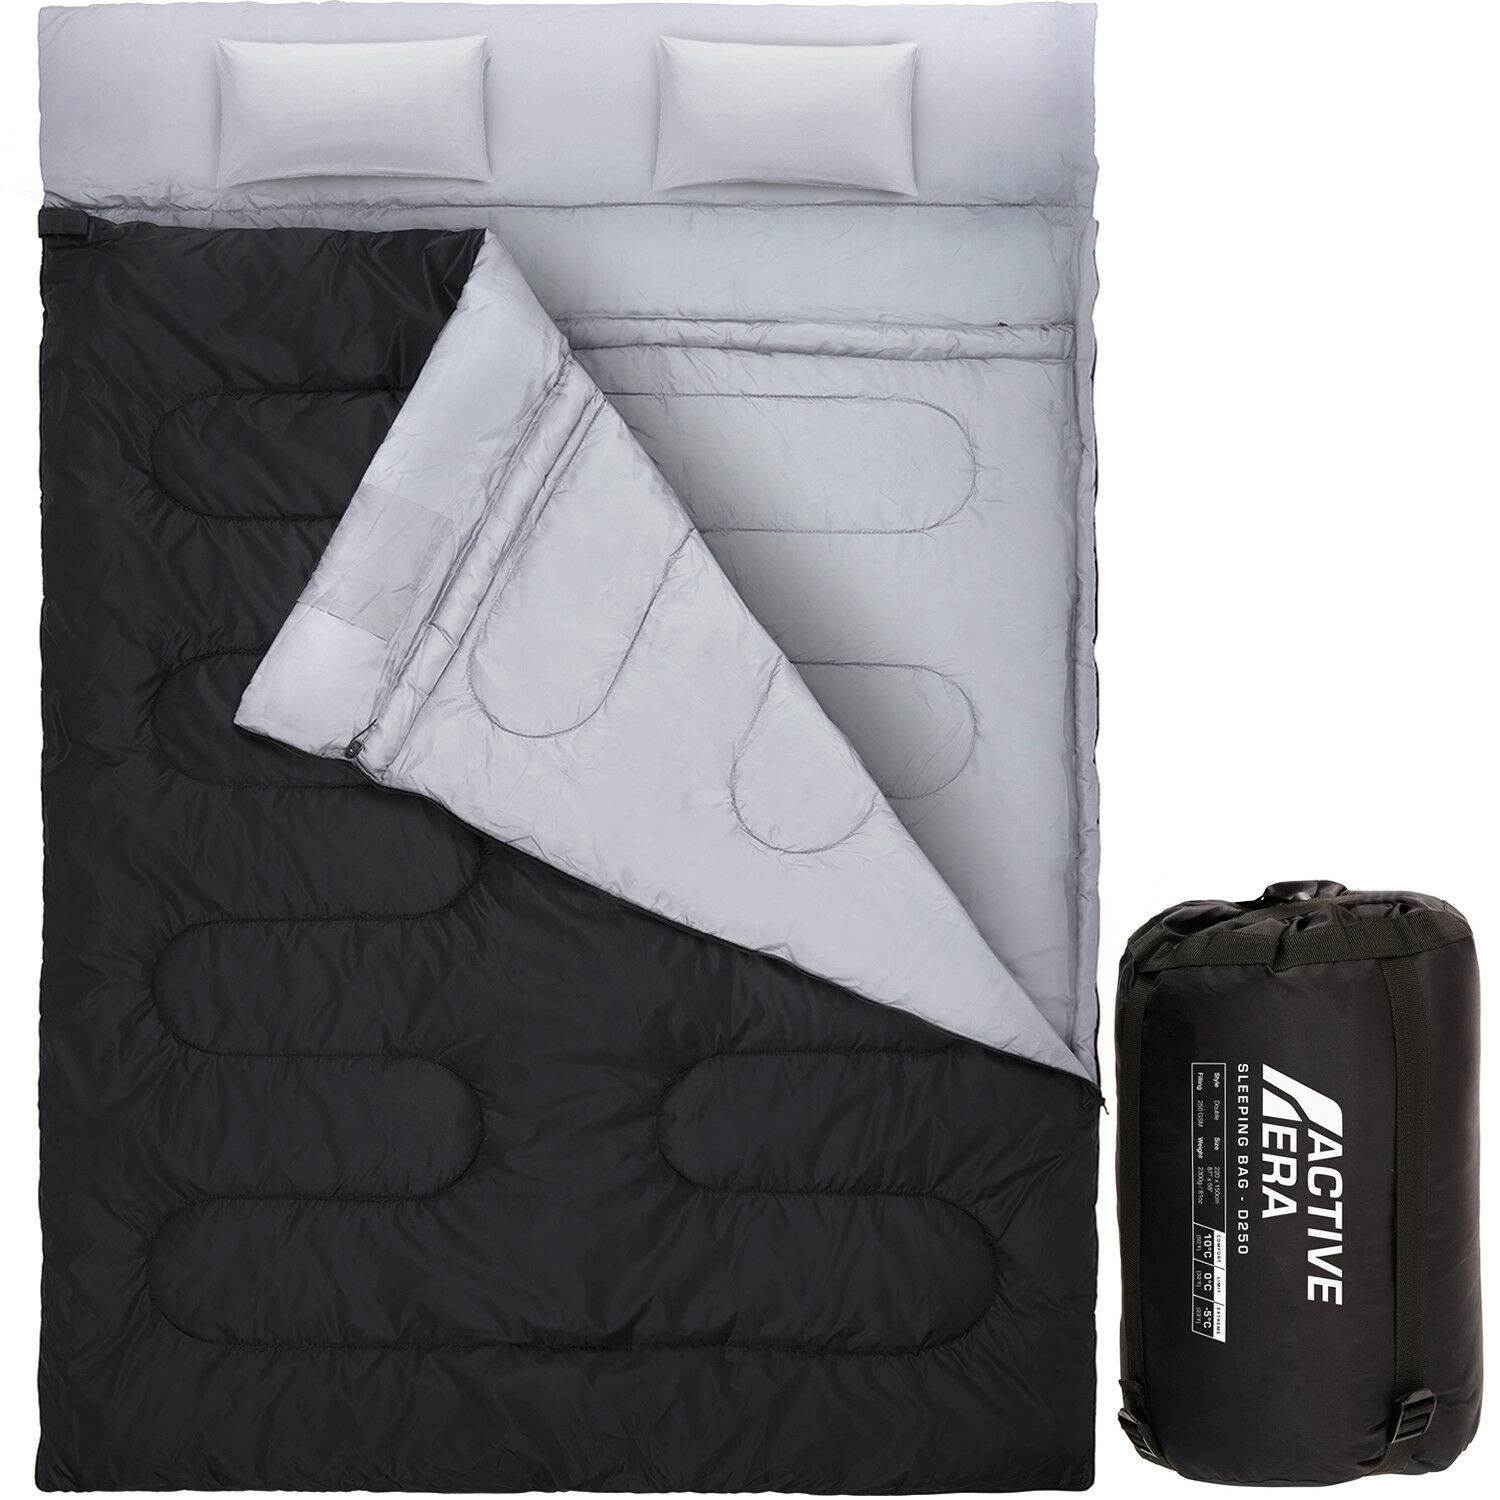 Double Sleeping Bag - Extra Large Queen  Size - Congreens to 2 Singles - 3 Season  choices with low price